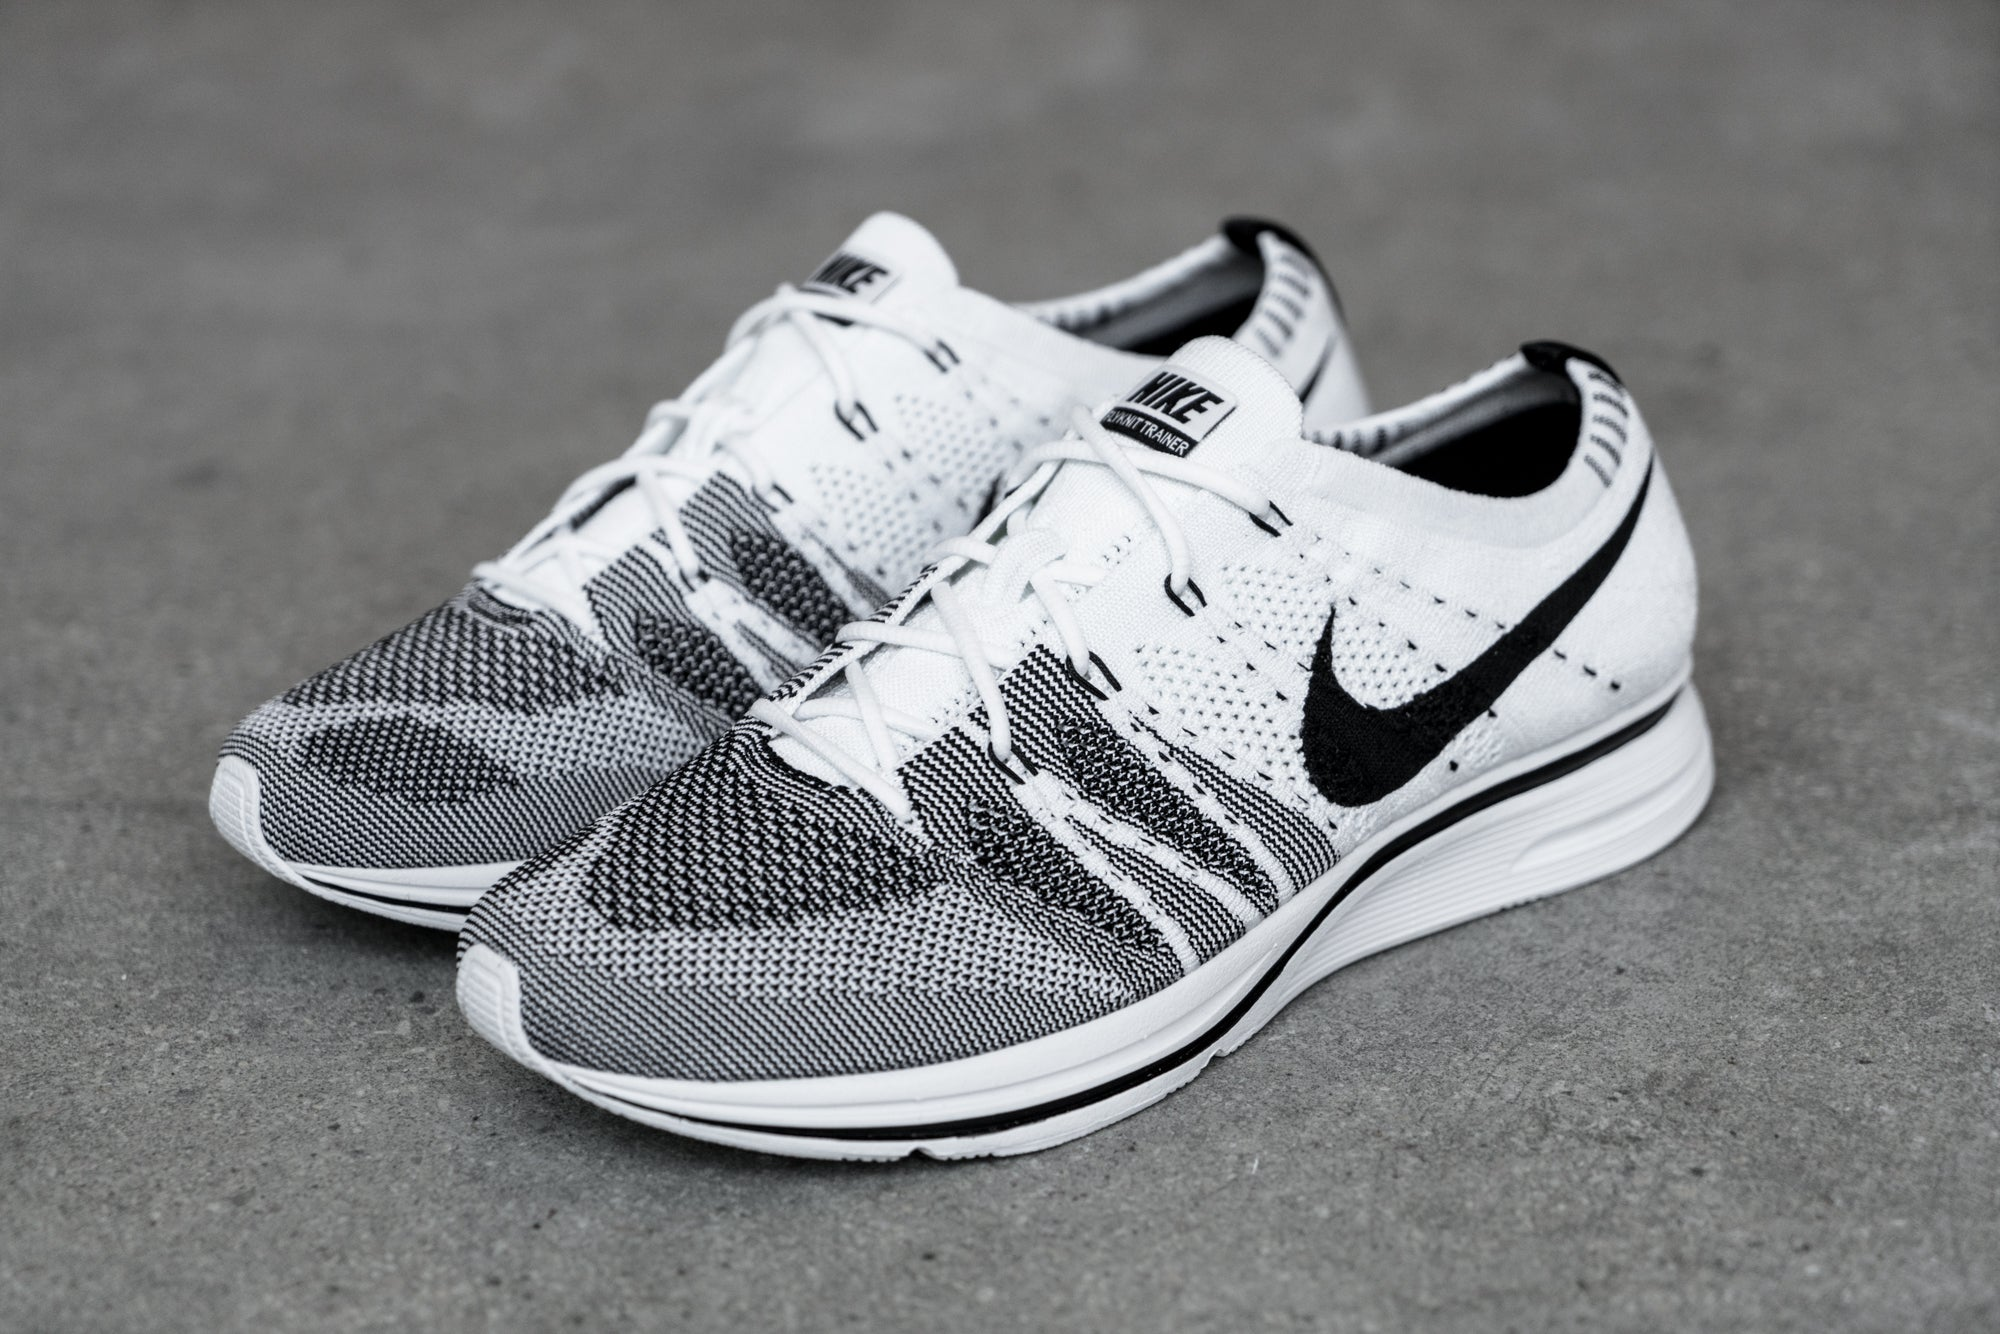 Nike OG Flyknit Trainer Black & White Rerelease